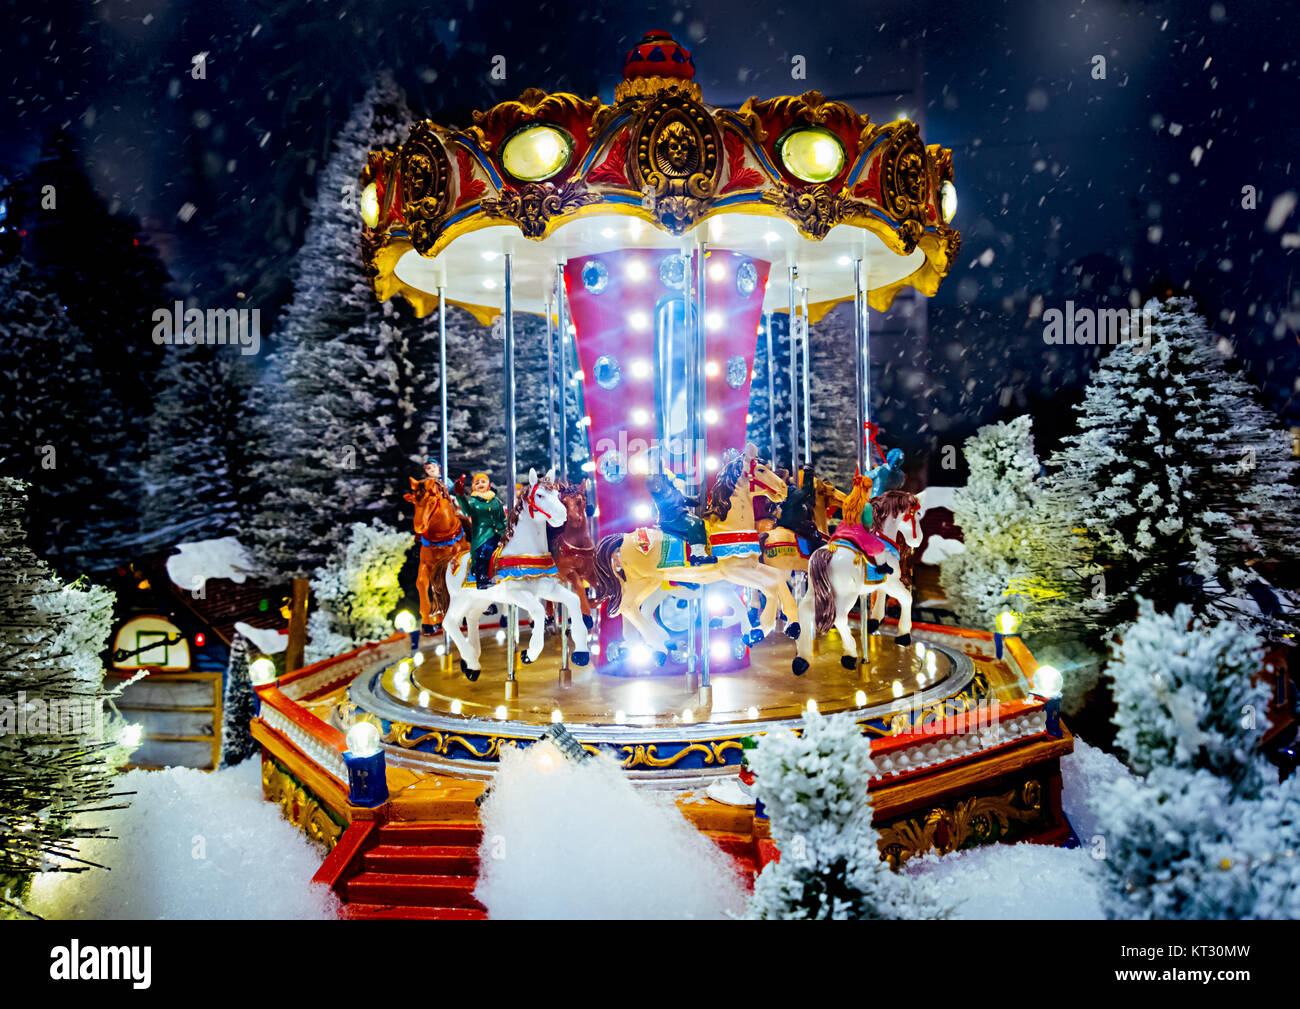 miniature christmas village scene christmas decorations toys stock image - Miniature Christmas Town Decorations